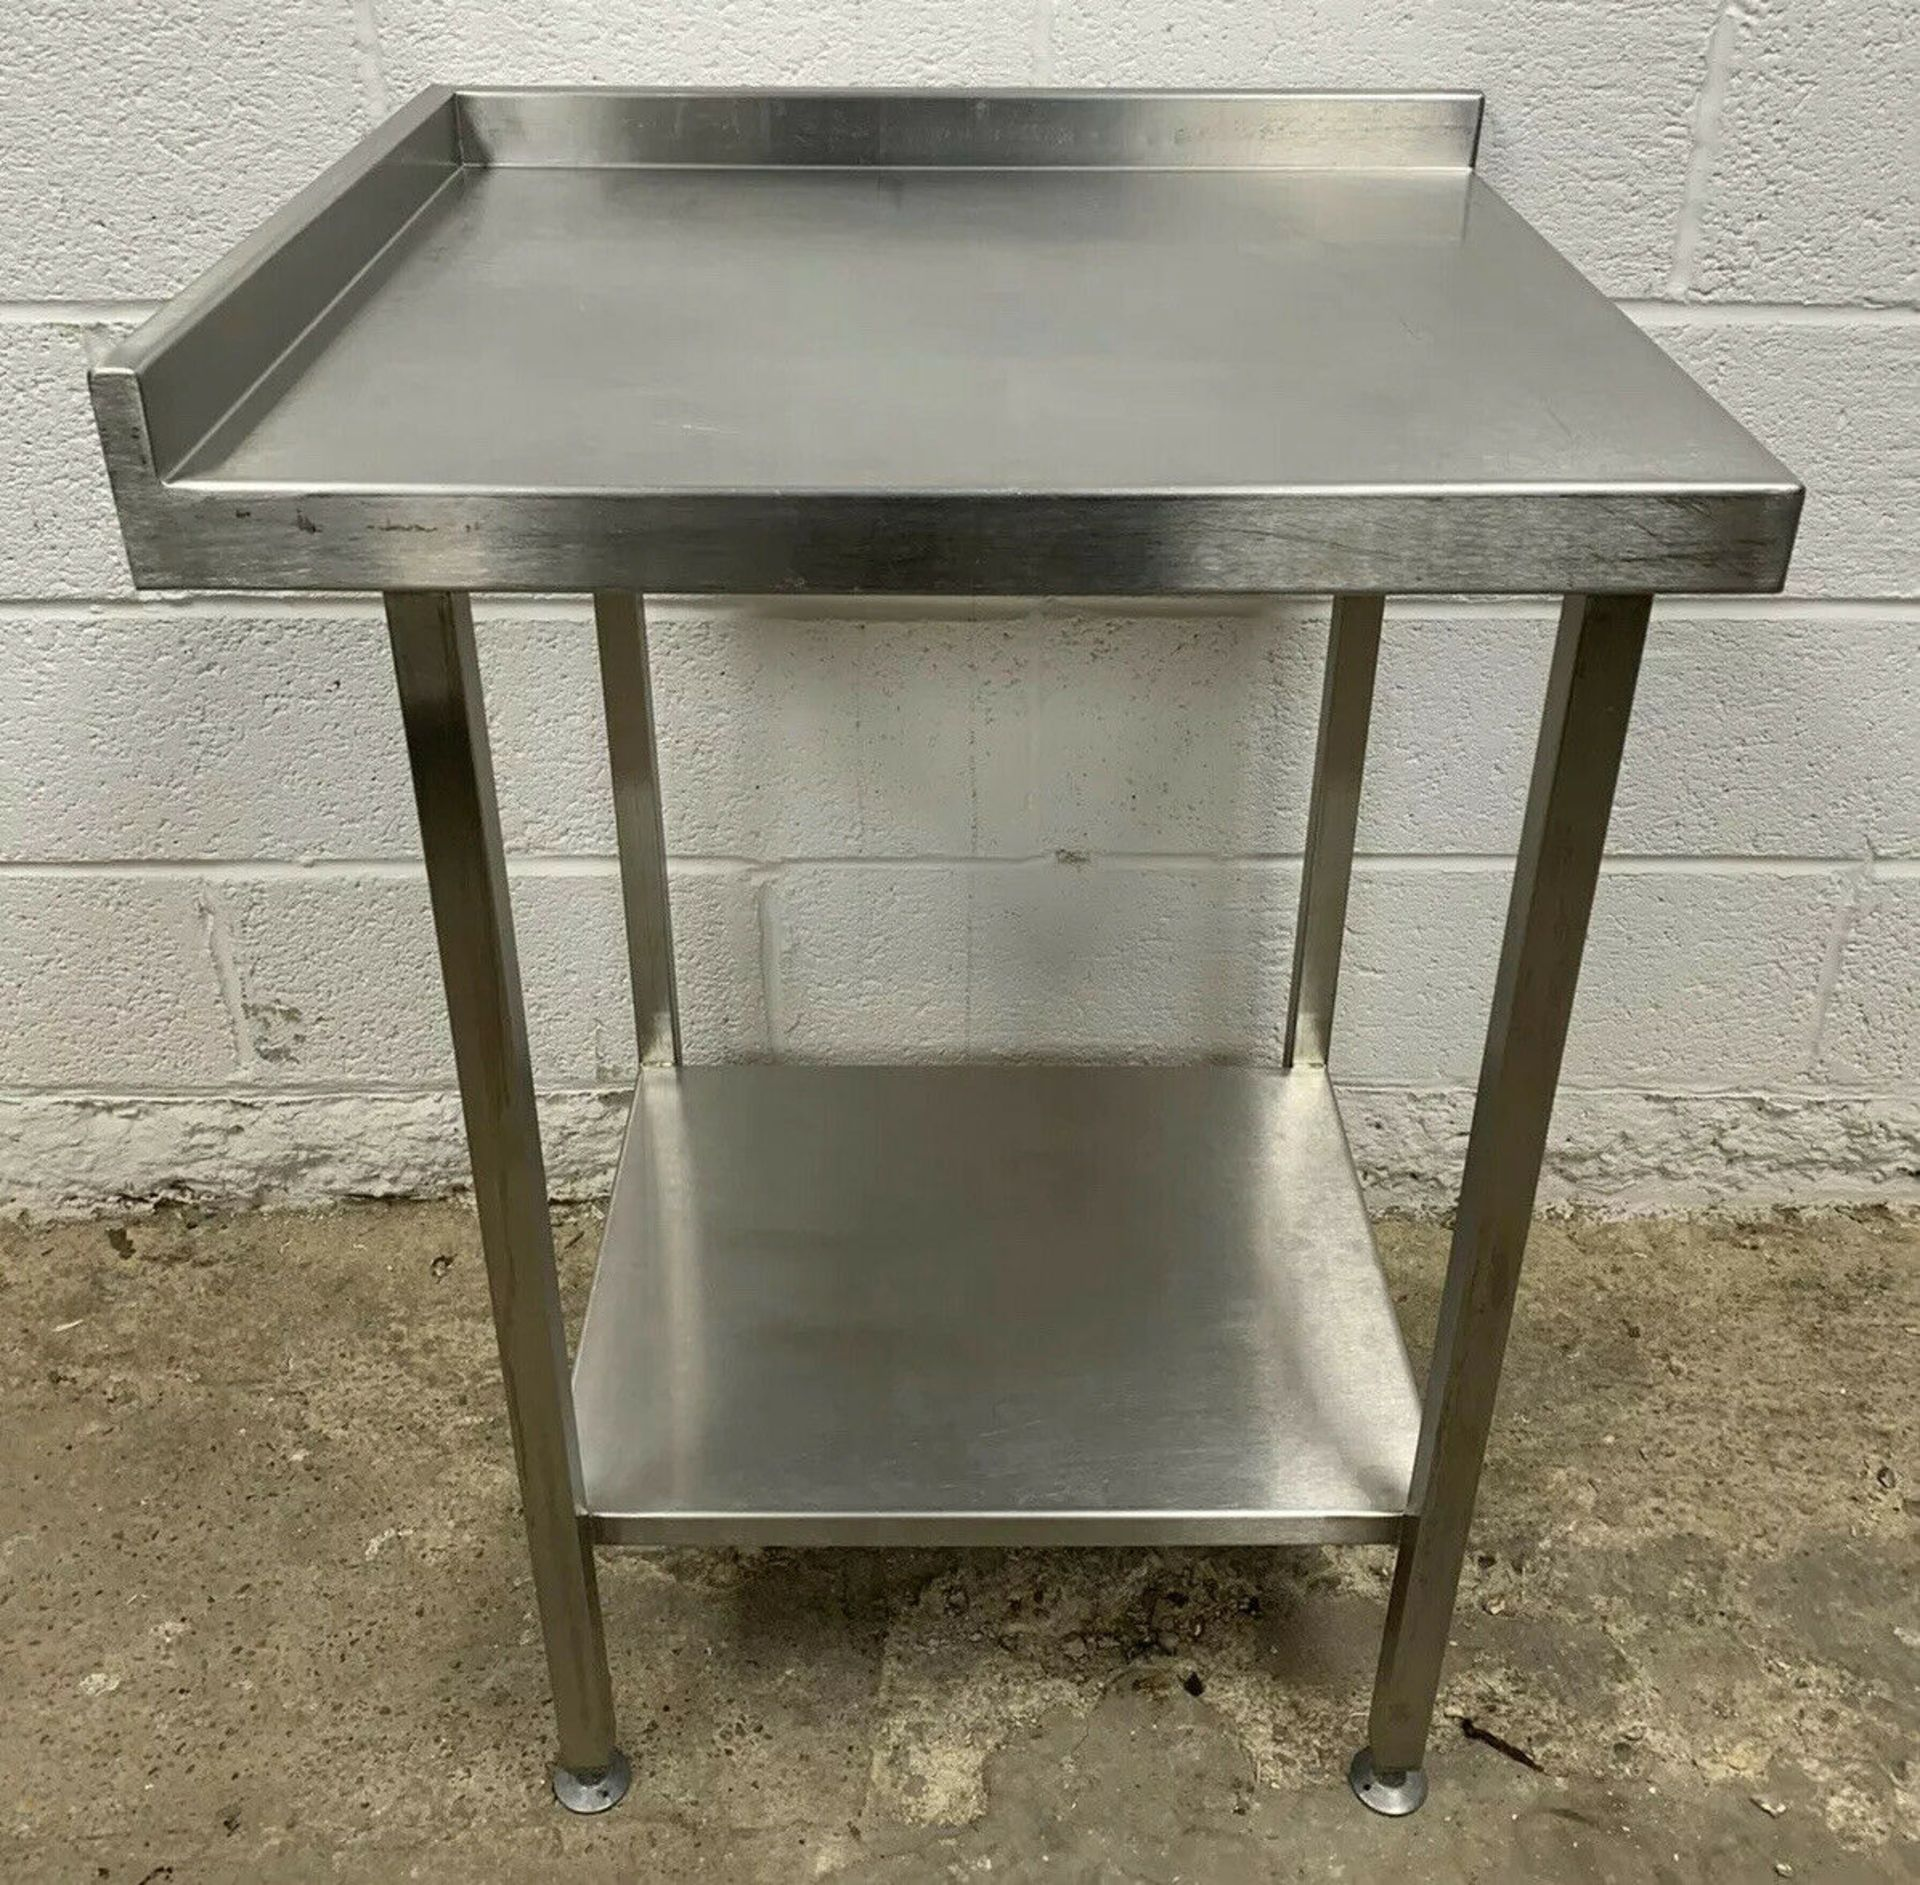 Lot 35 - Stainless Steel Prep Table